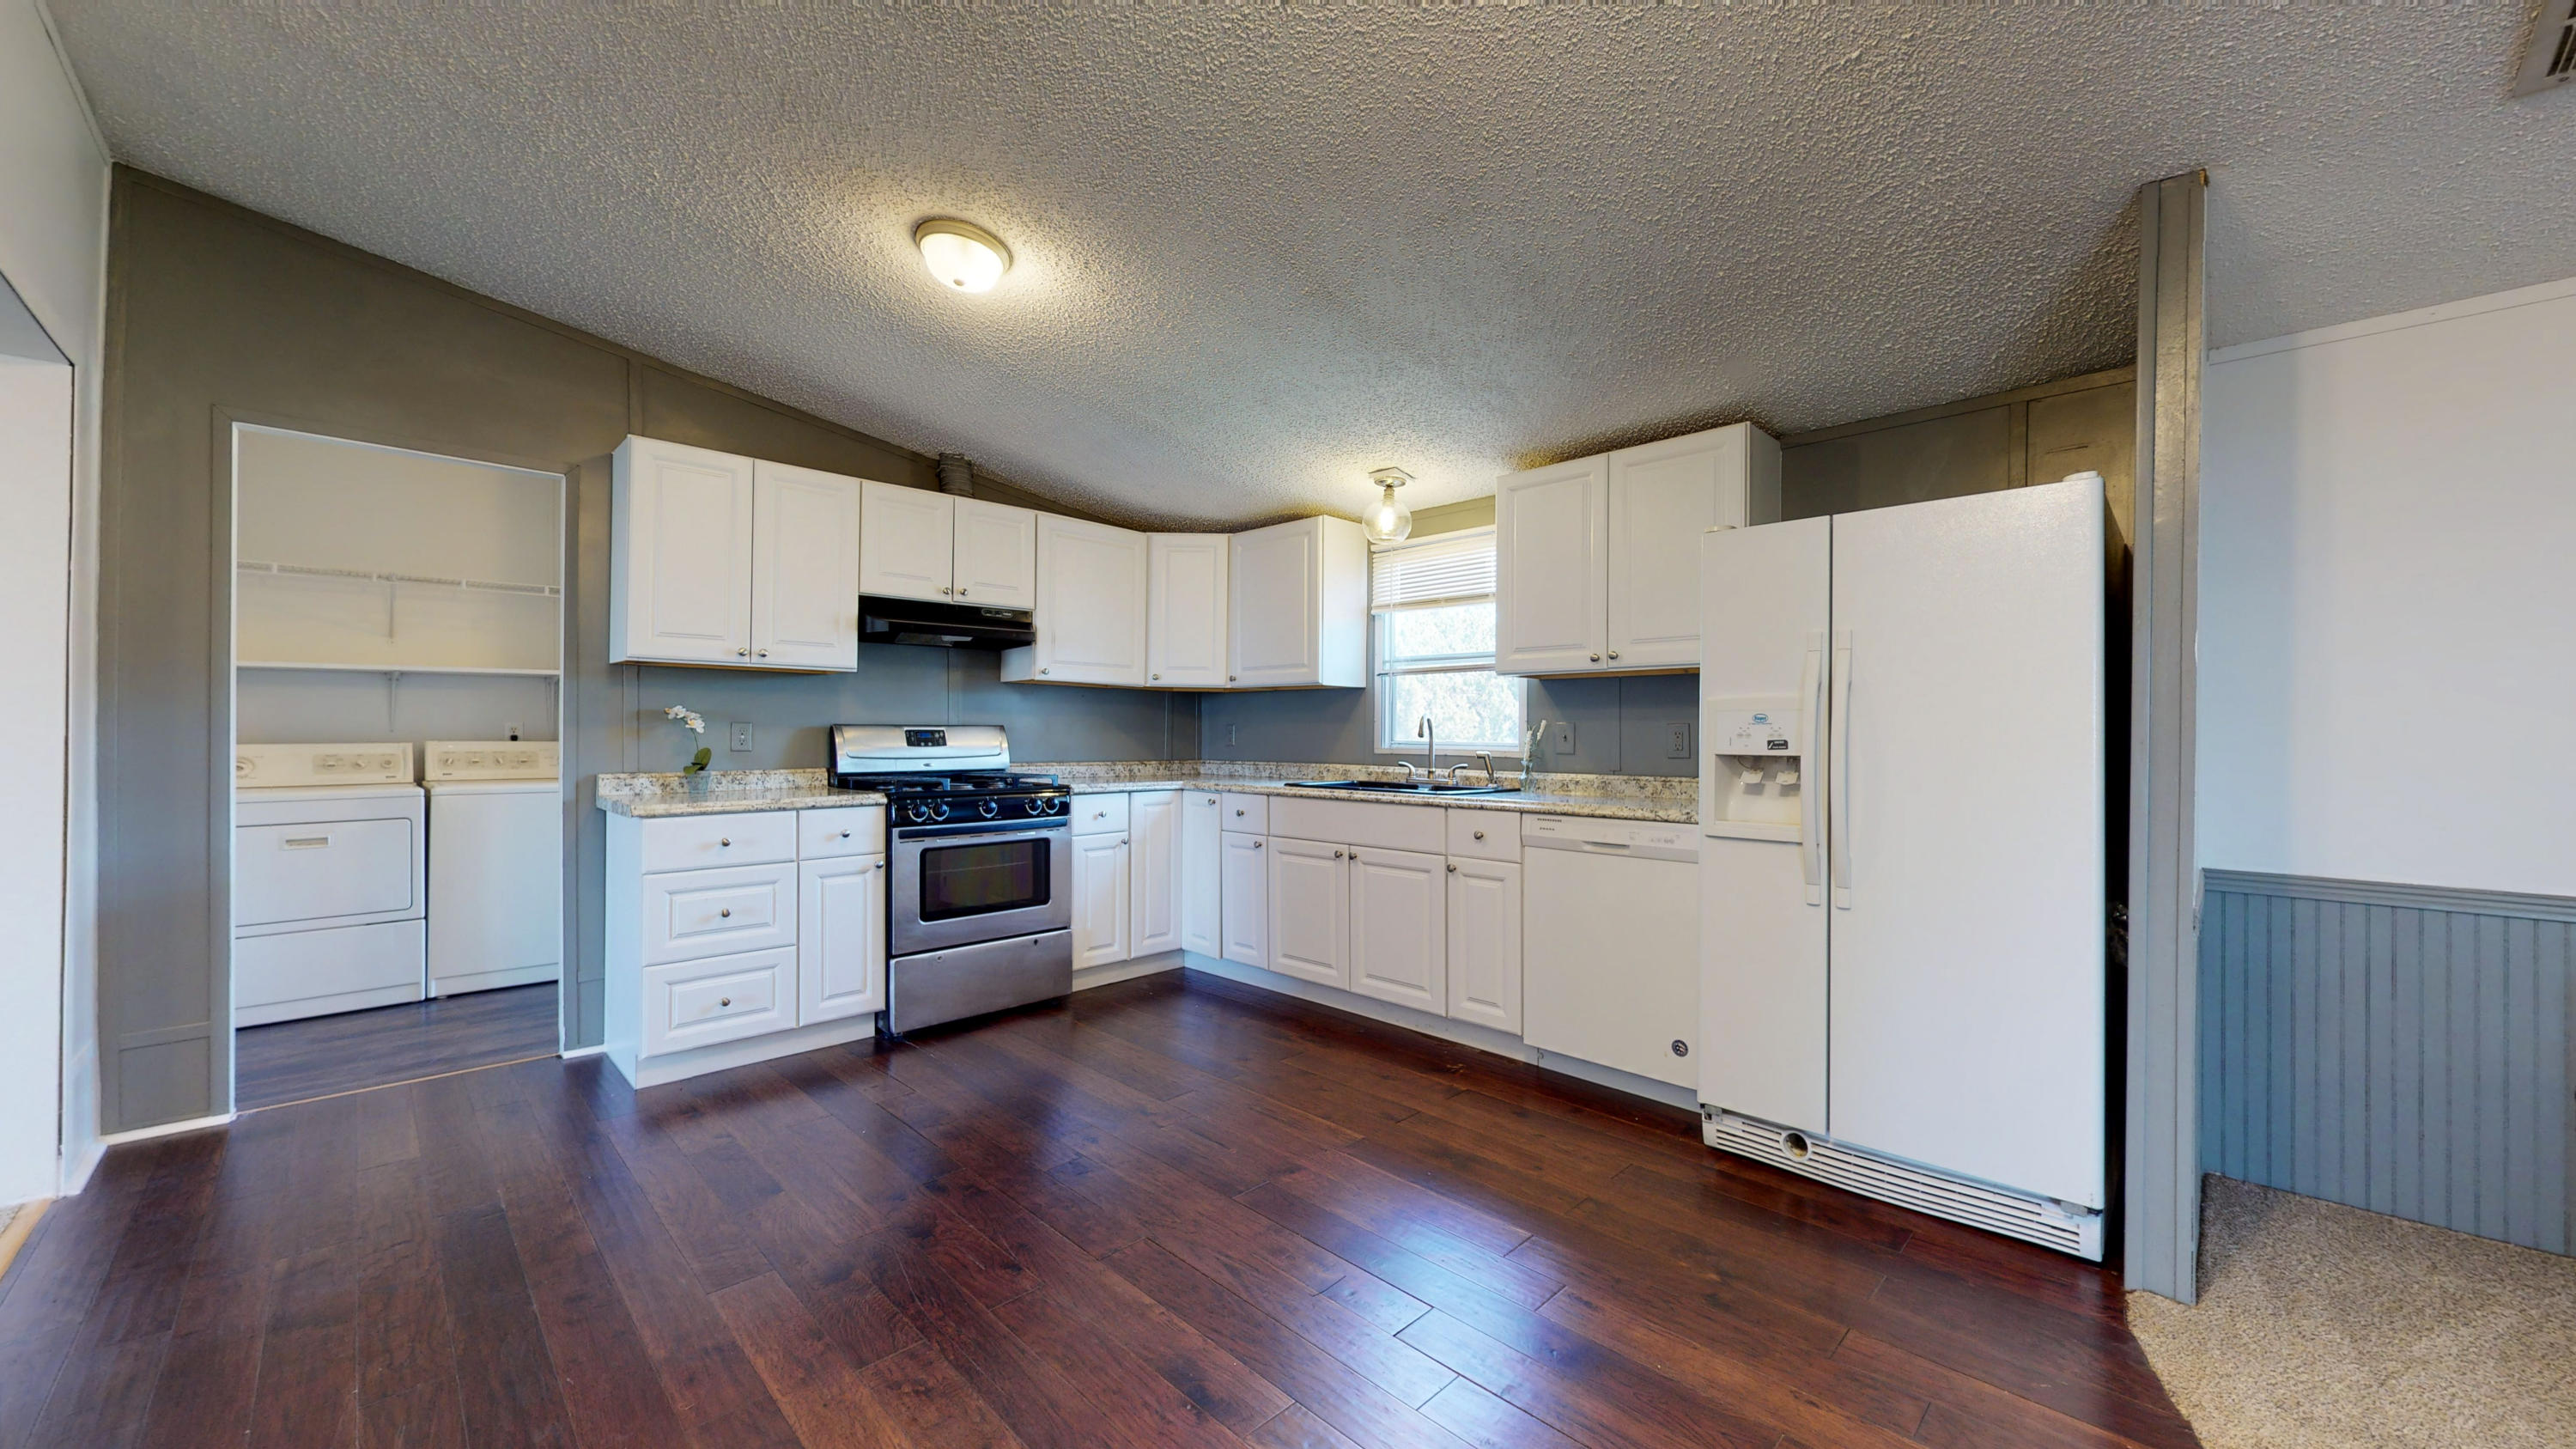 Come home to your own slice of New Mexico paradise. Large, updated, open floor plan, turn key home waiting for you, Enjoy the benefits of country living without the stress of high propane cost, dirt roads or risky wells. Get out and see this one before it's gone.